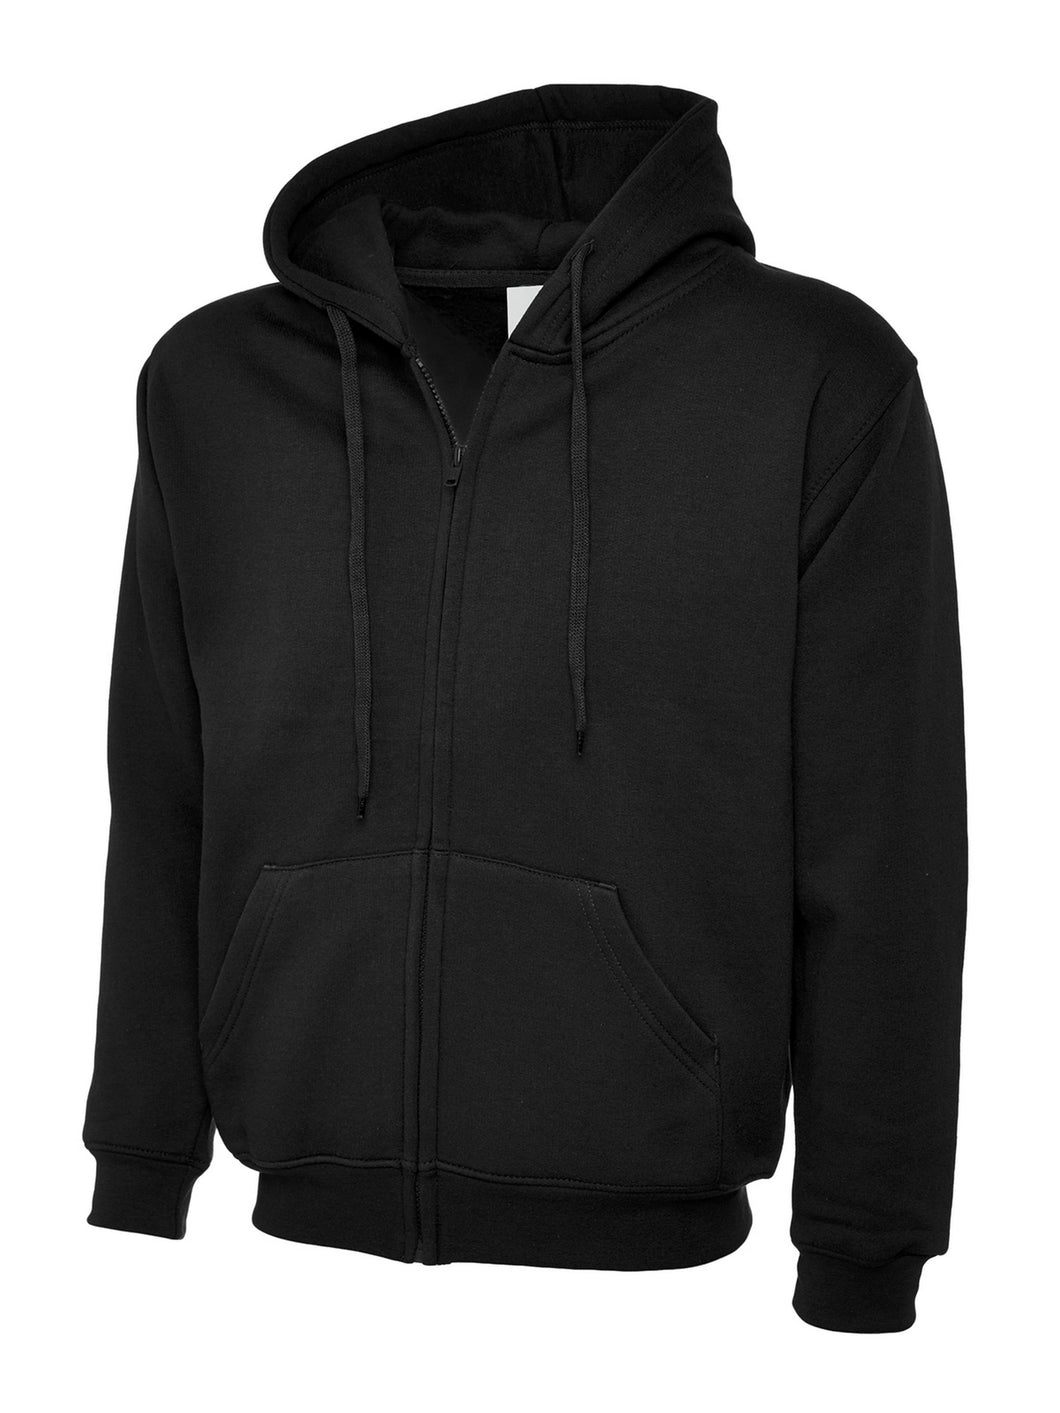 Uneek Classic Zip hoodie Gazelle Sports UK XS Black